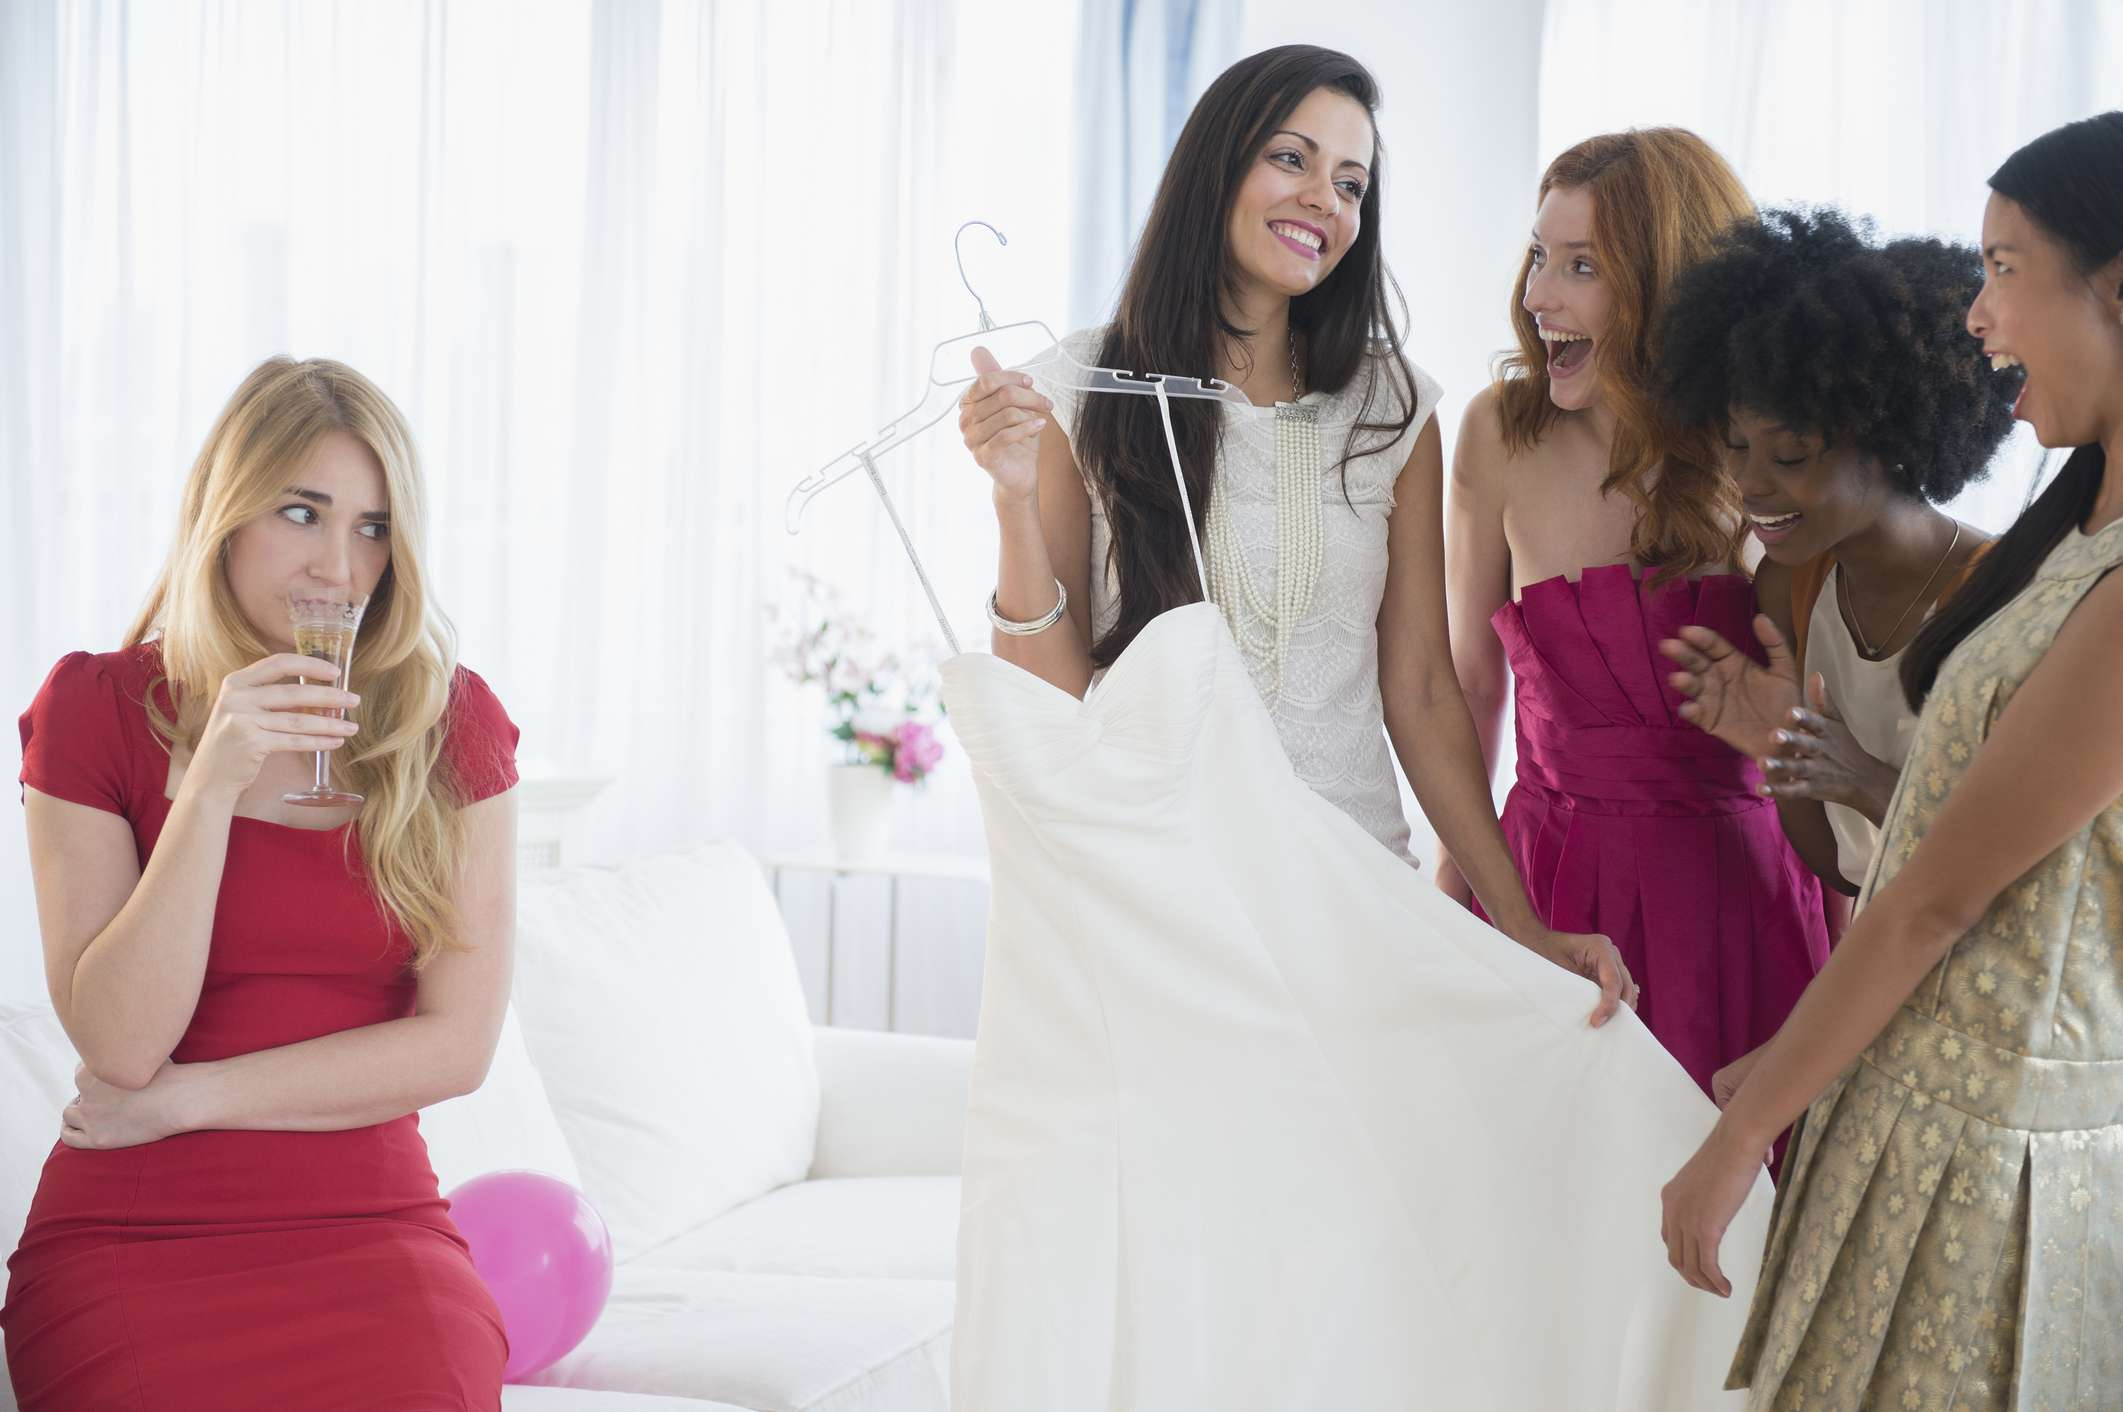 Bride and bride's maids looking at wedding dress while one bride's maid sit aside looking on